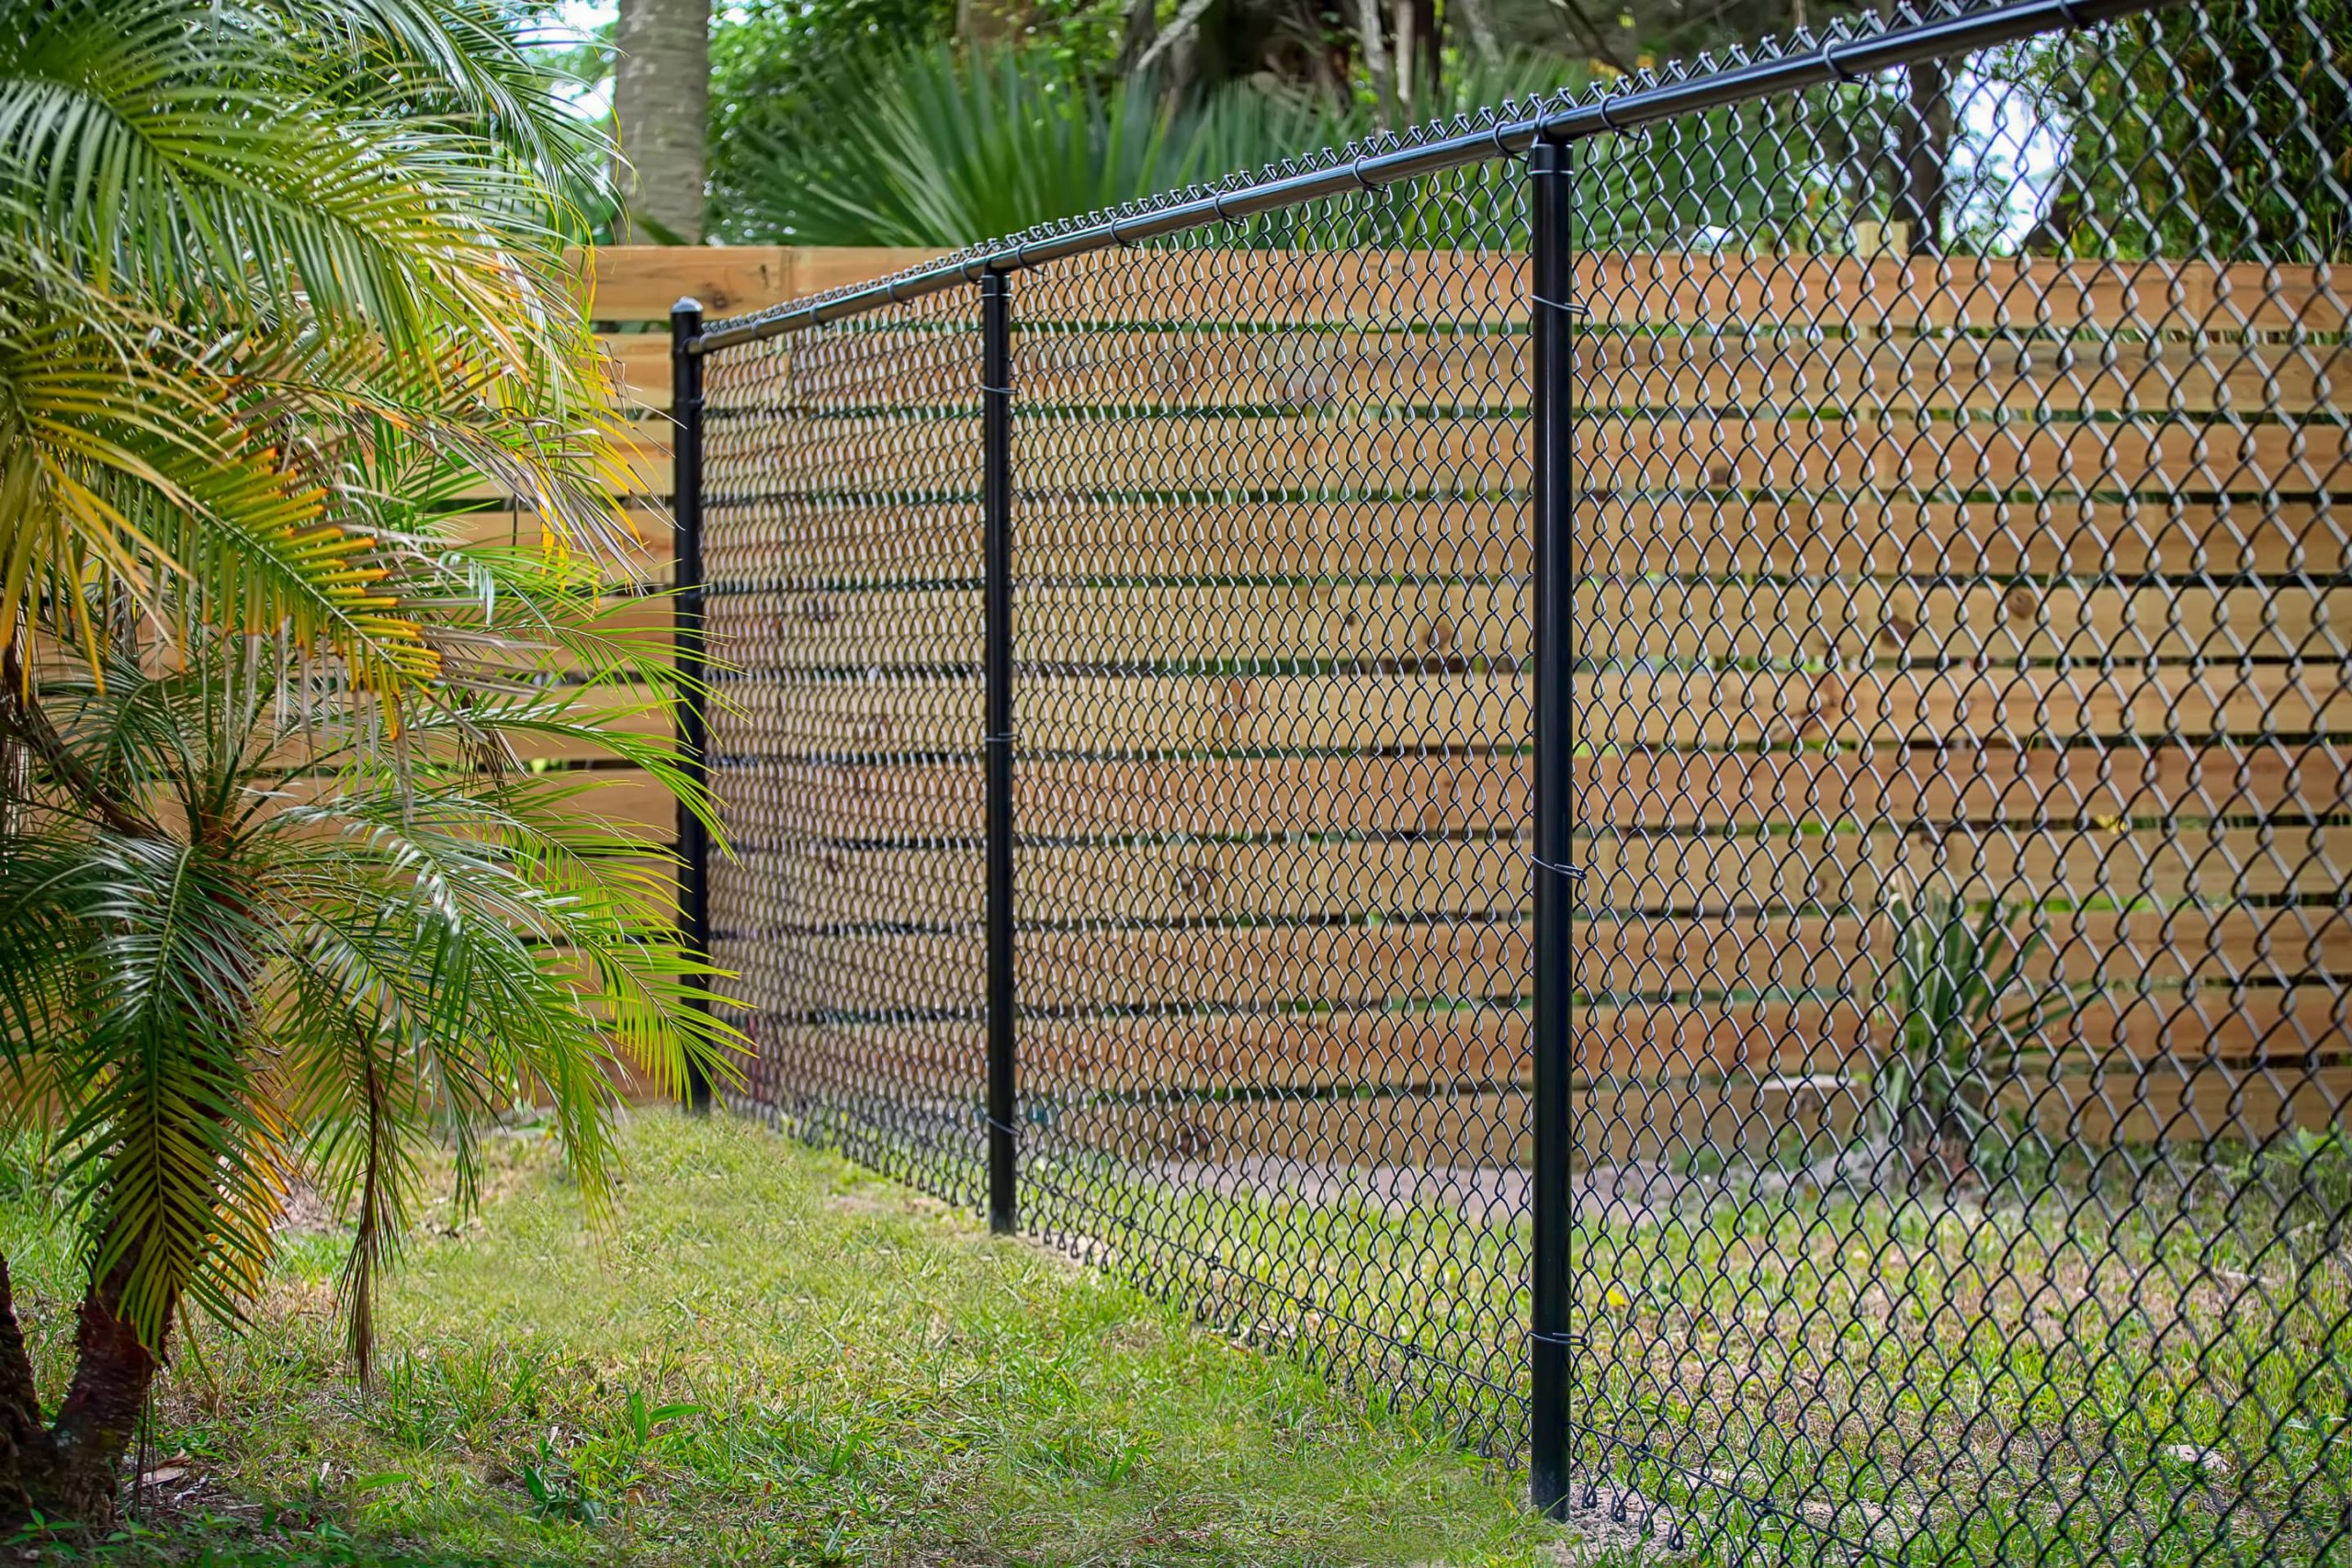 This image shows a tall black chain link fence.